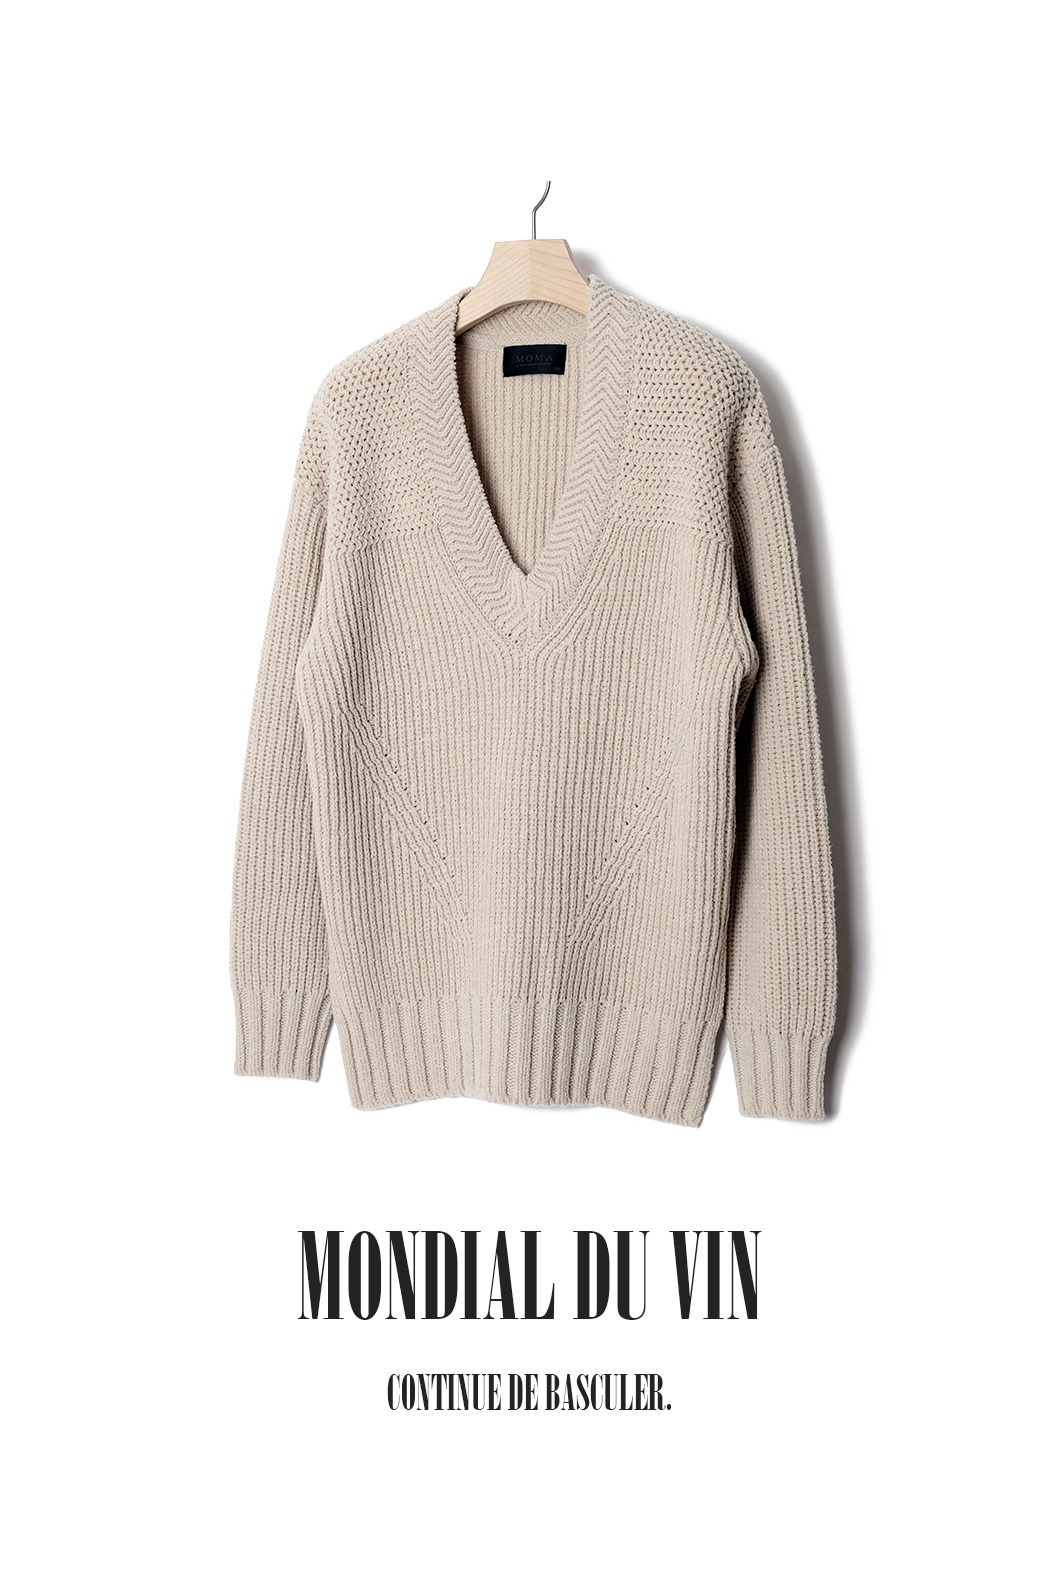 BRYANT DEEP V-NECK HEAVY KNIT-APRICOT BEIGE[Italy yarn]최근 판매 이슈제품!!